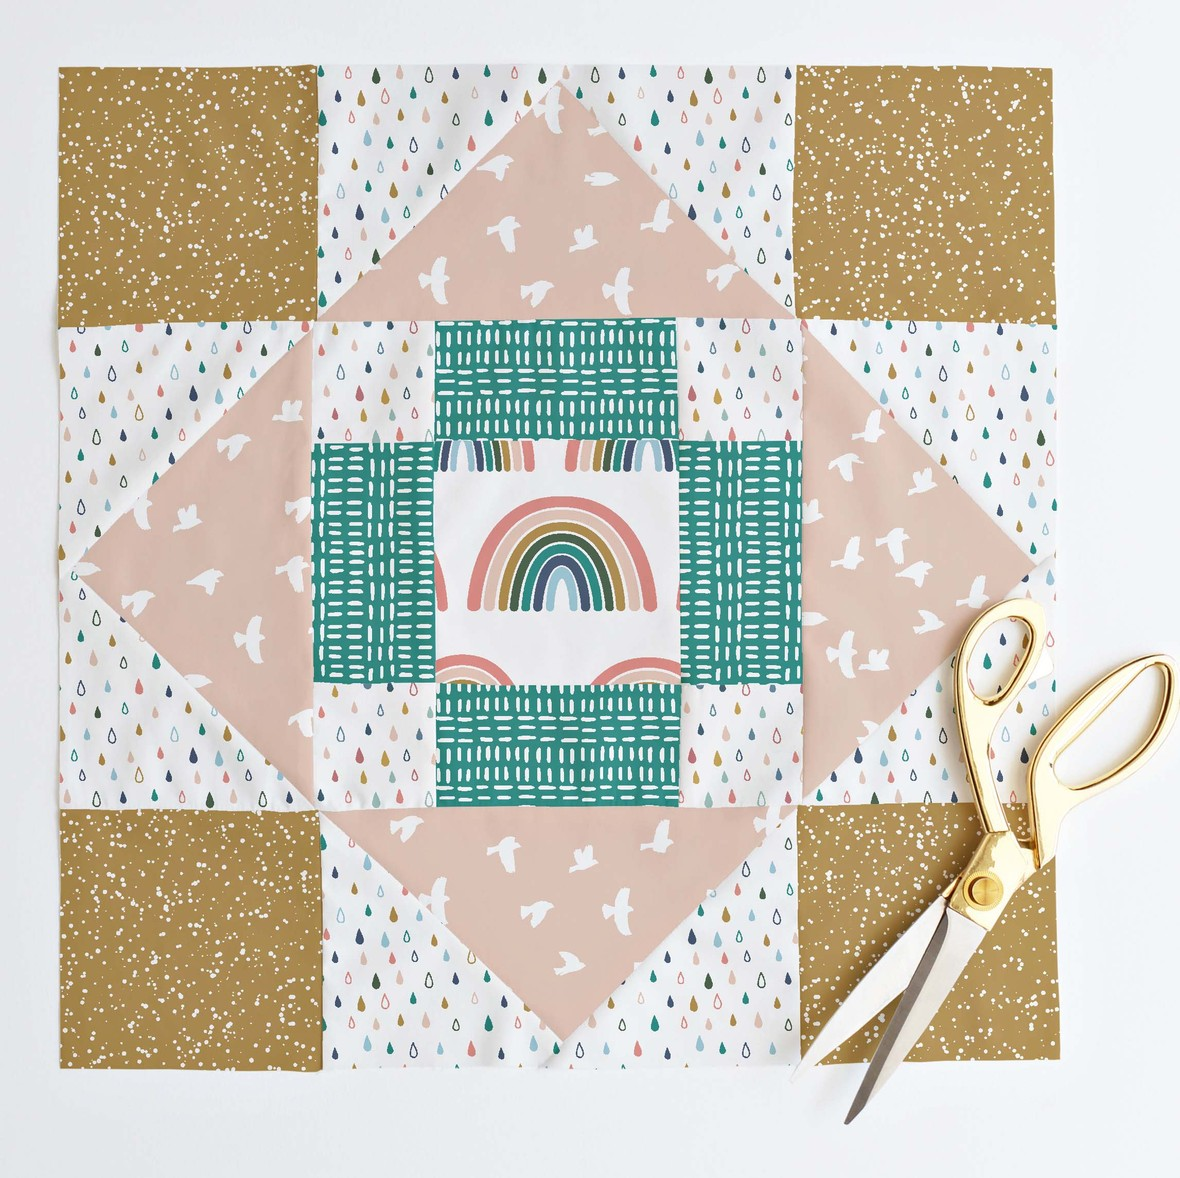 Meadowland Quilt Block in oh deer